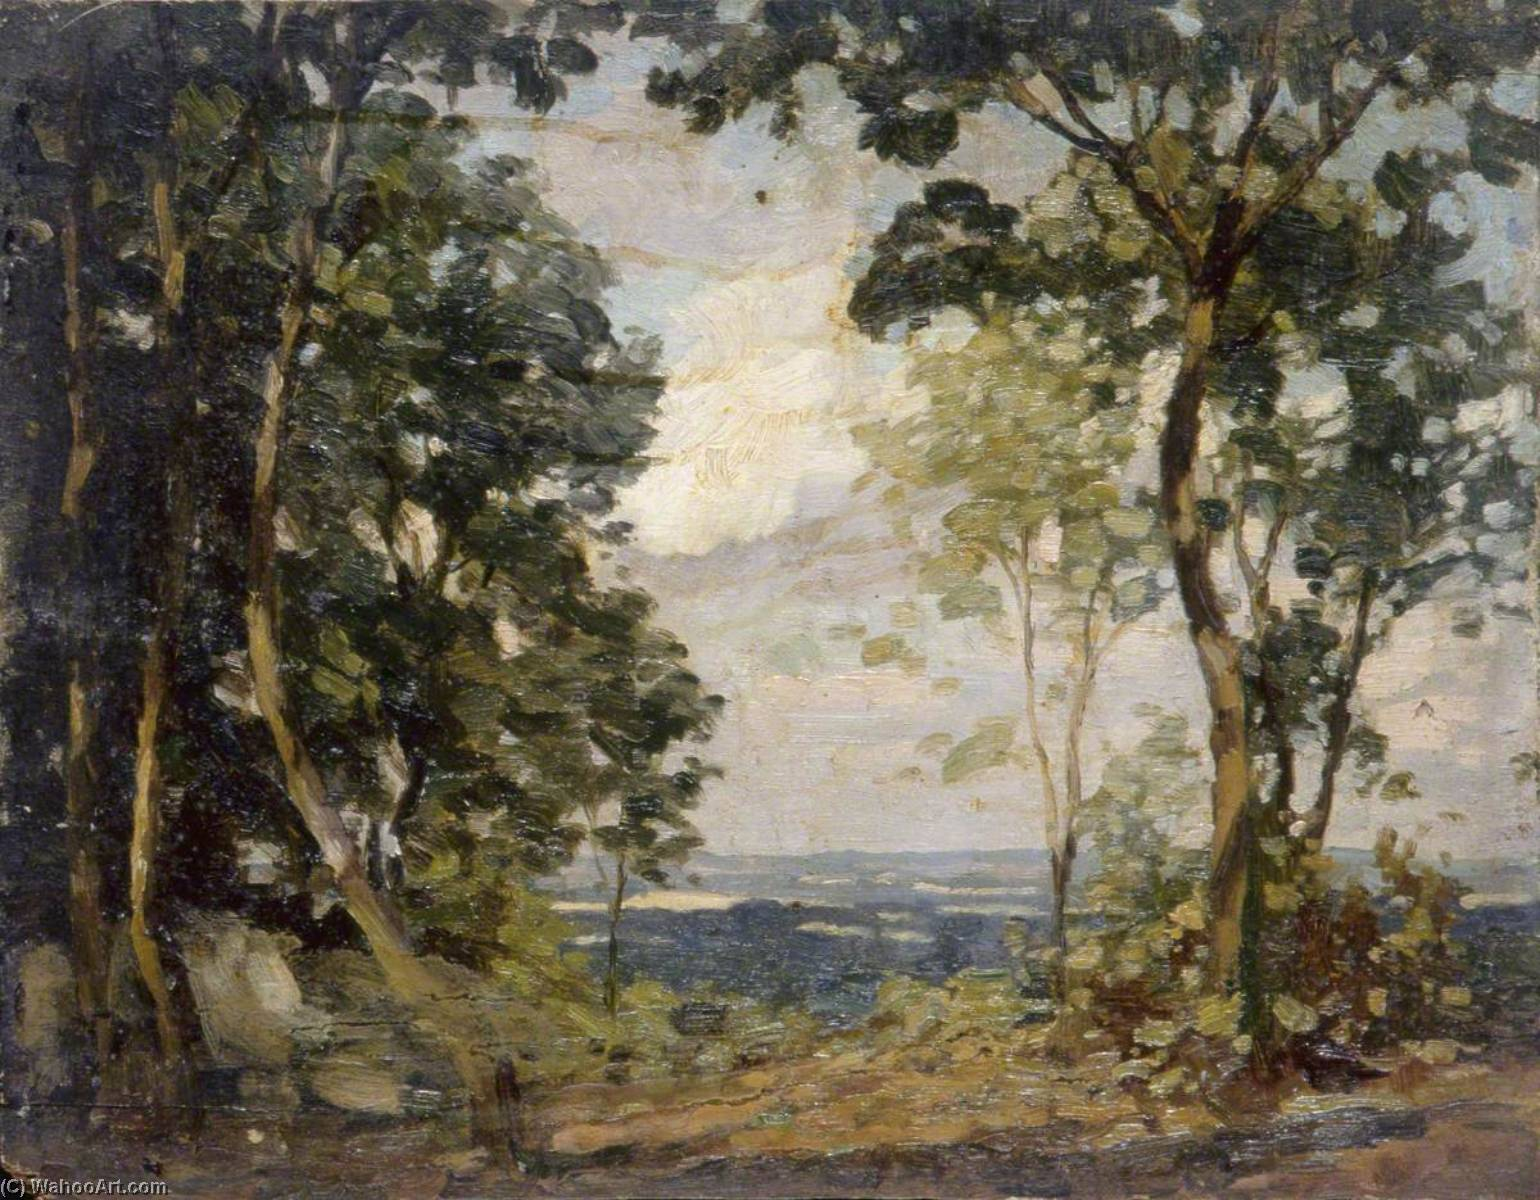 Woodland Clearing Overlooking Lower Land, Oil by Gunning King